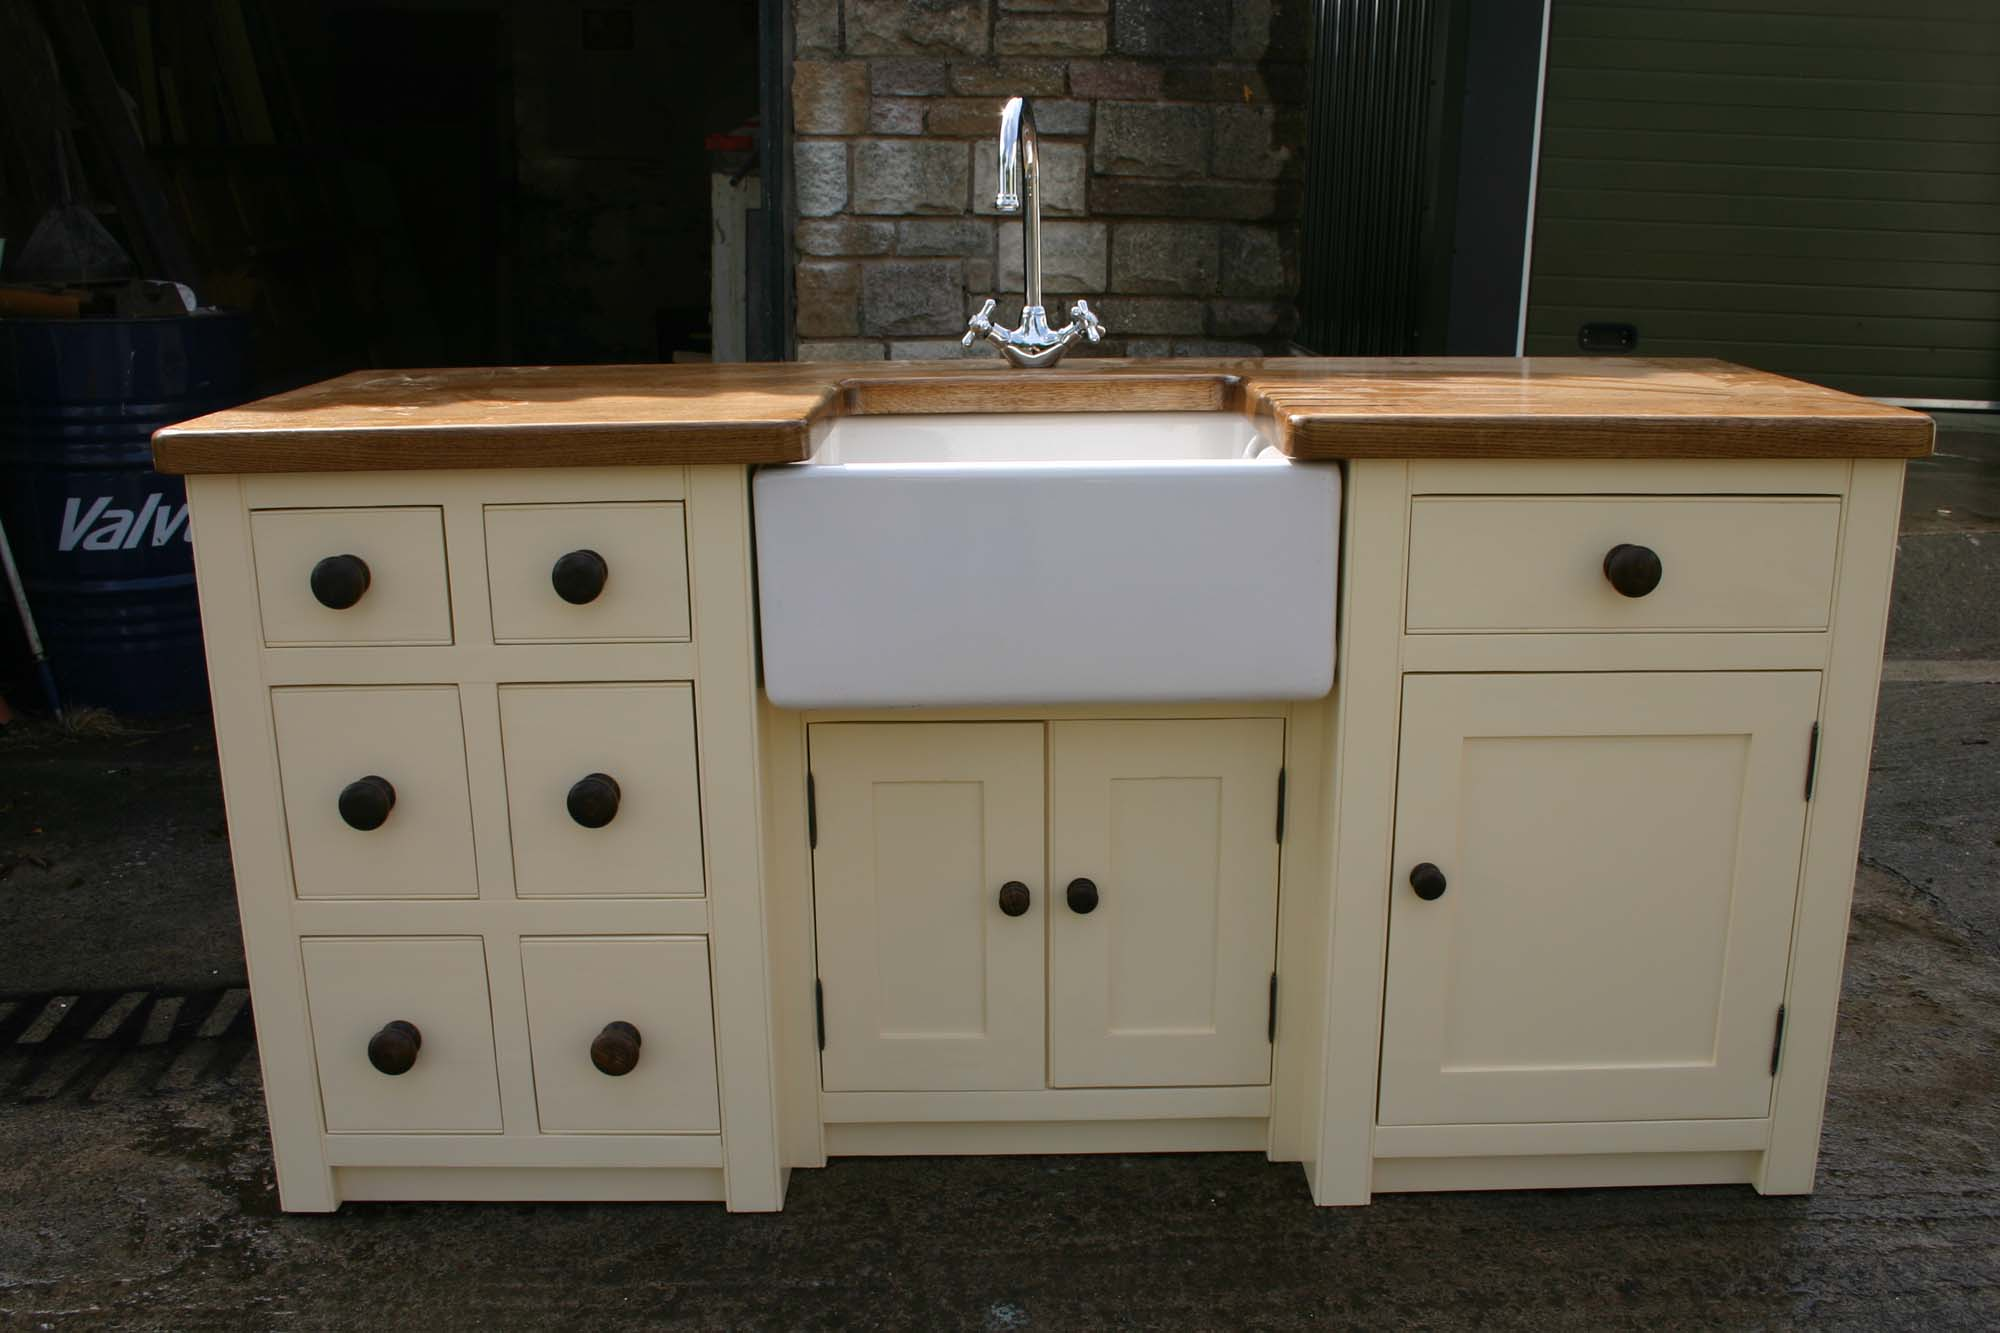 The ministry of pine antique pine furniture and free for Vintage kitchen units uk